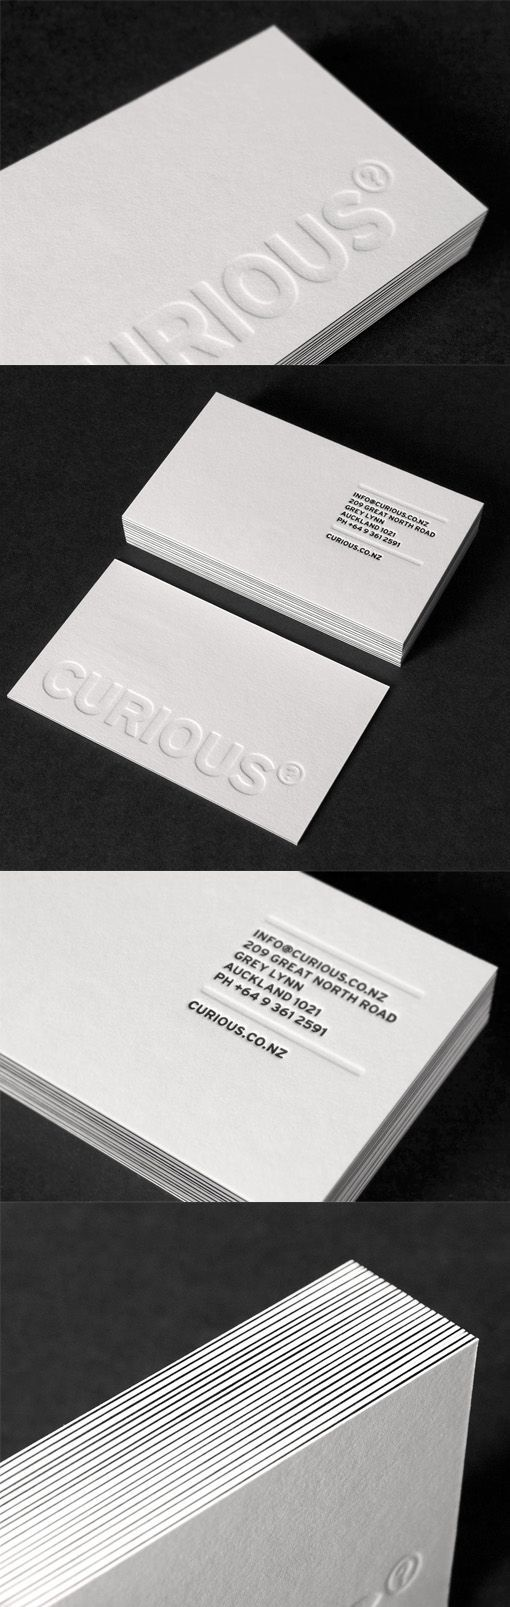 Deeply embossed white letterpress business card design graphic deeply embossed white letterpress business card design reheart Image collections